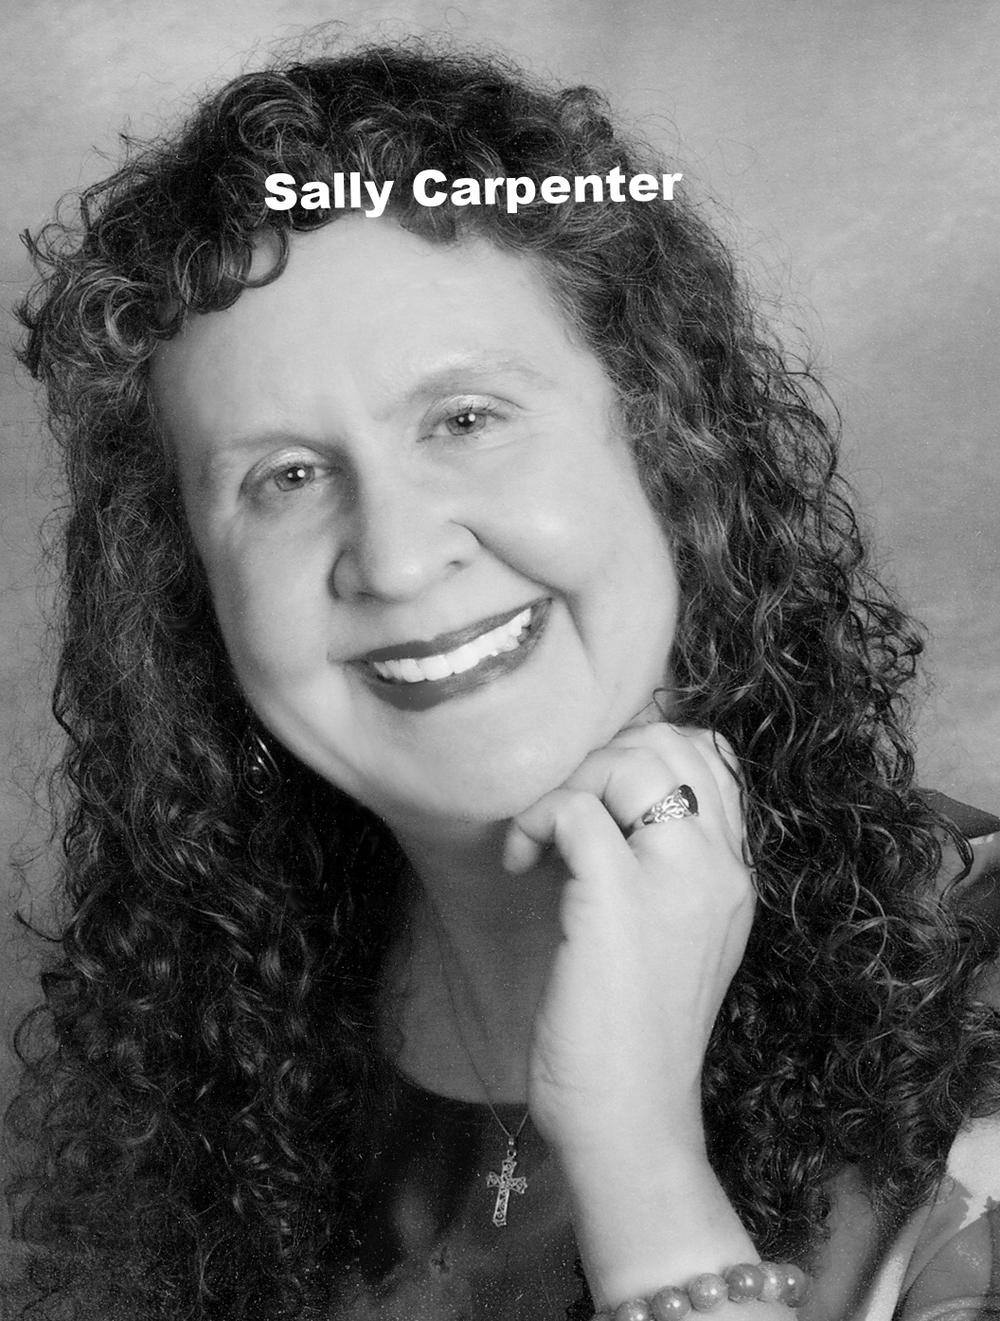 Sally Carpenter